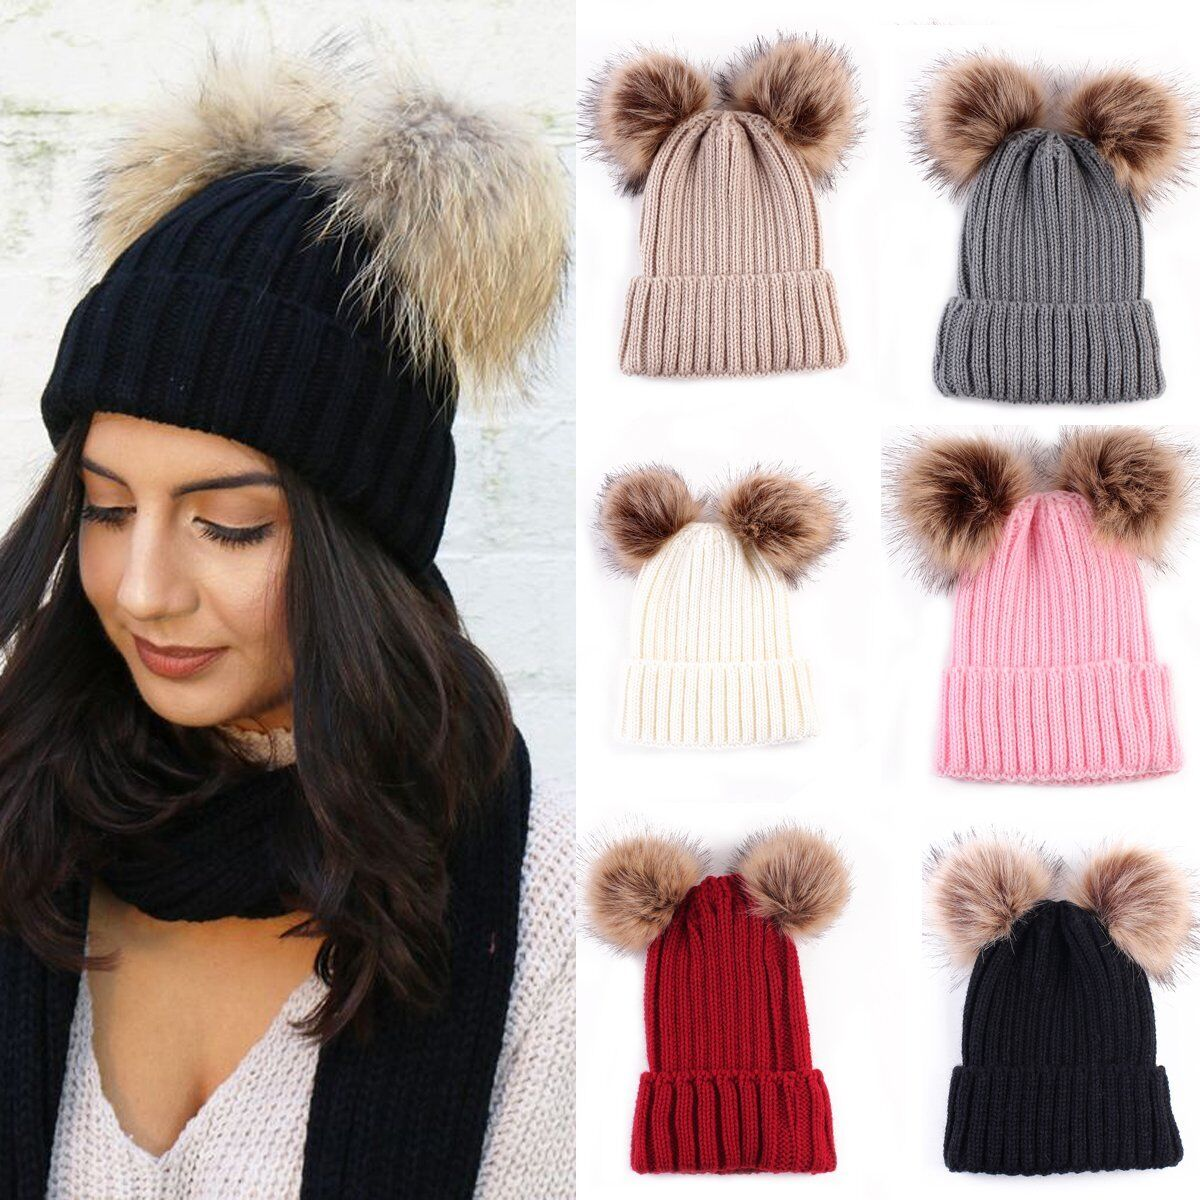 044b7d359 Details about Faux Fur Hat Double Pom Beanie Hat In Wool Knit Bobble Ski  Cap Winter Warm Lot !